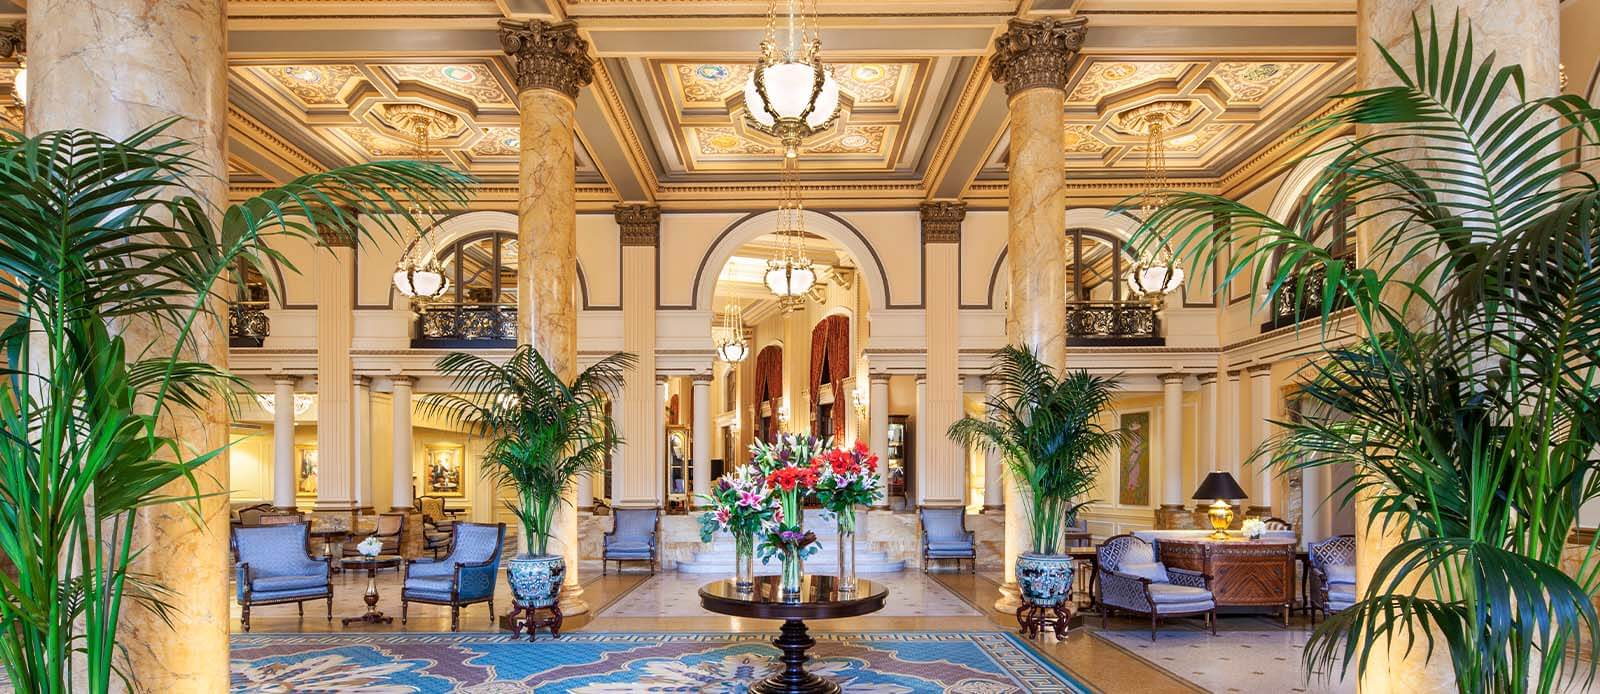 About Historic Hotels of America